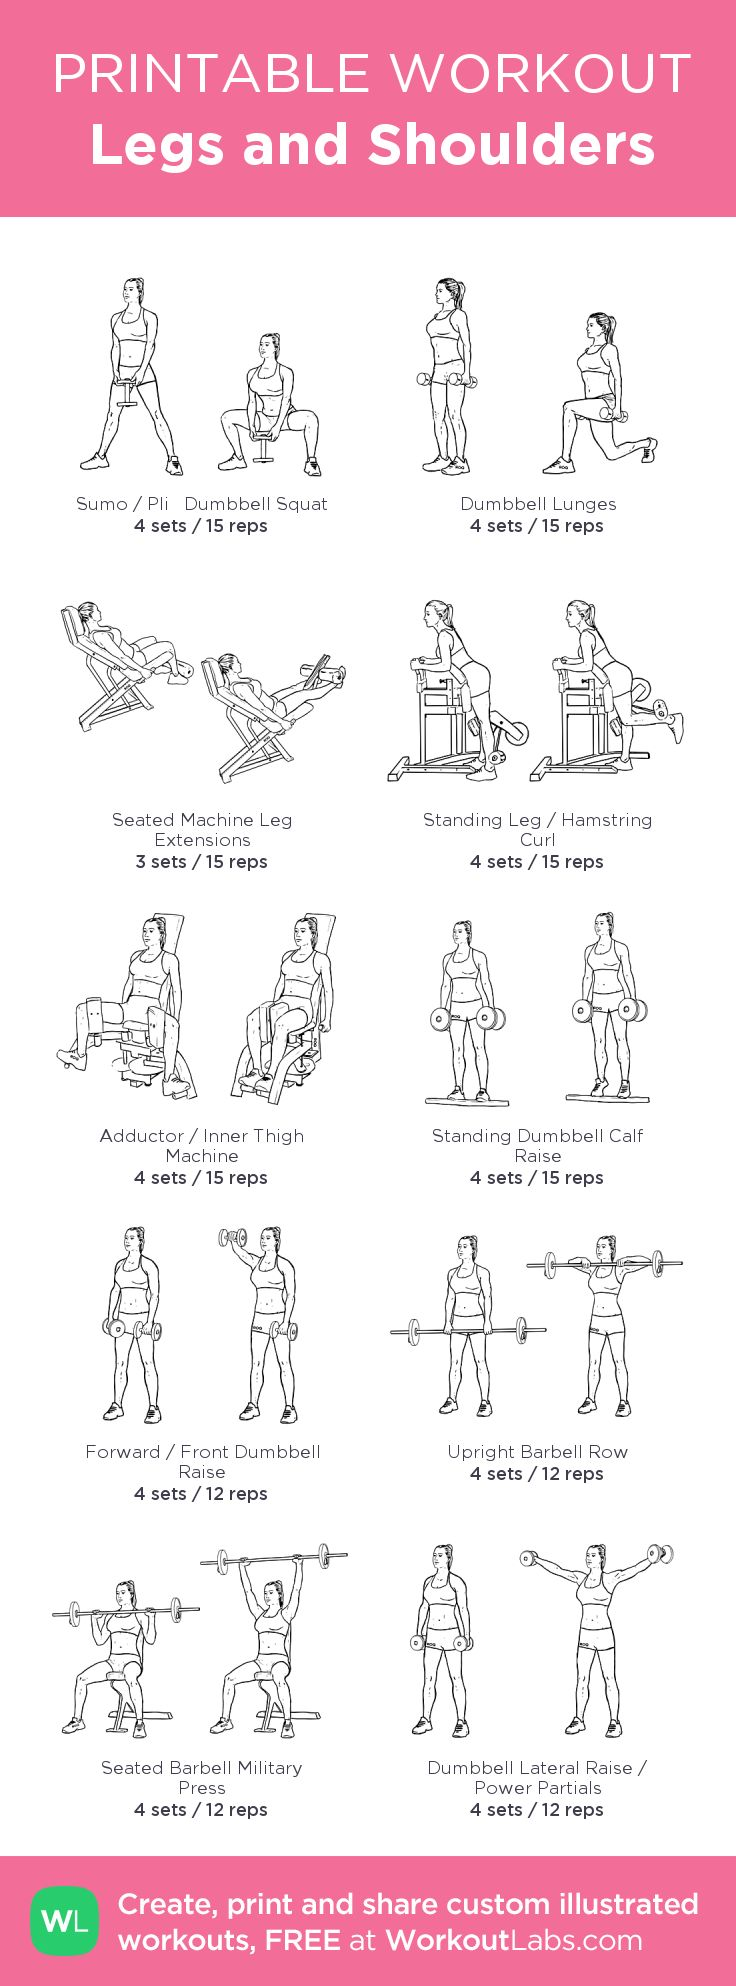 Legs and Shoulders:my visual workout created at WorkoutLabs.com • Click through to customize and download as a FREE PDF! #customworkout